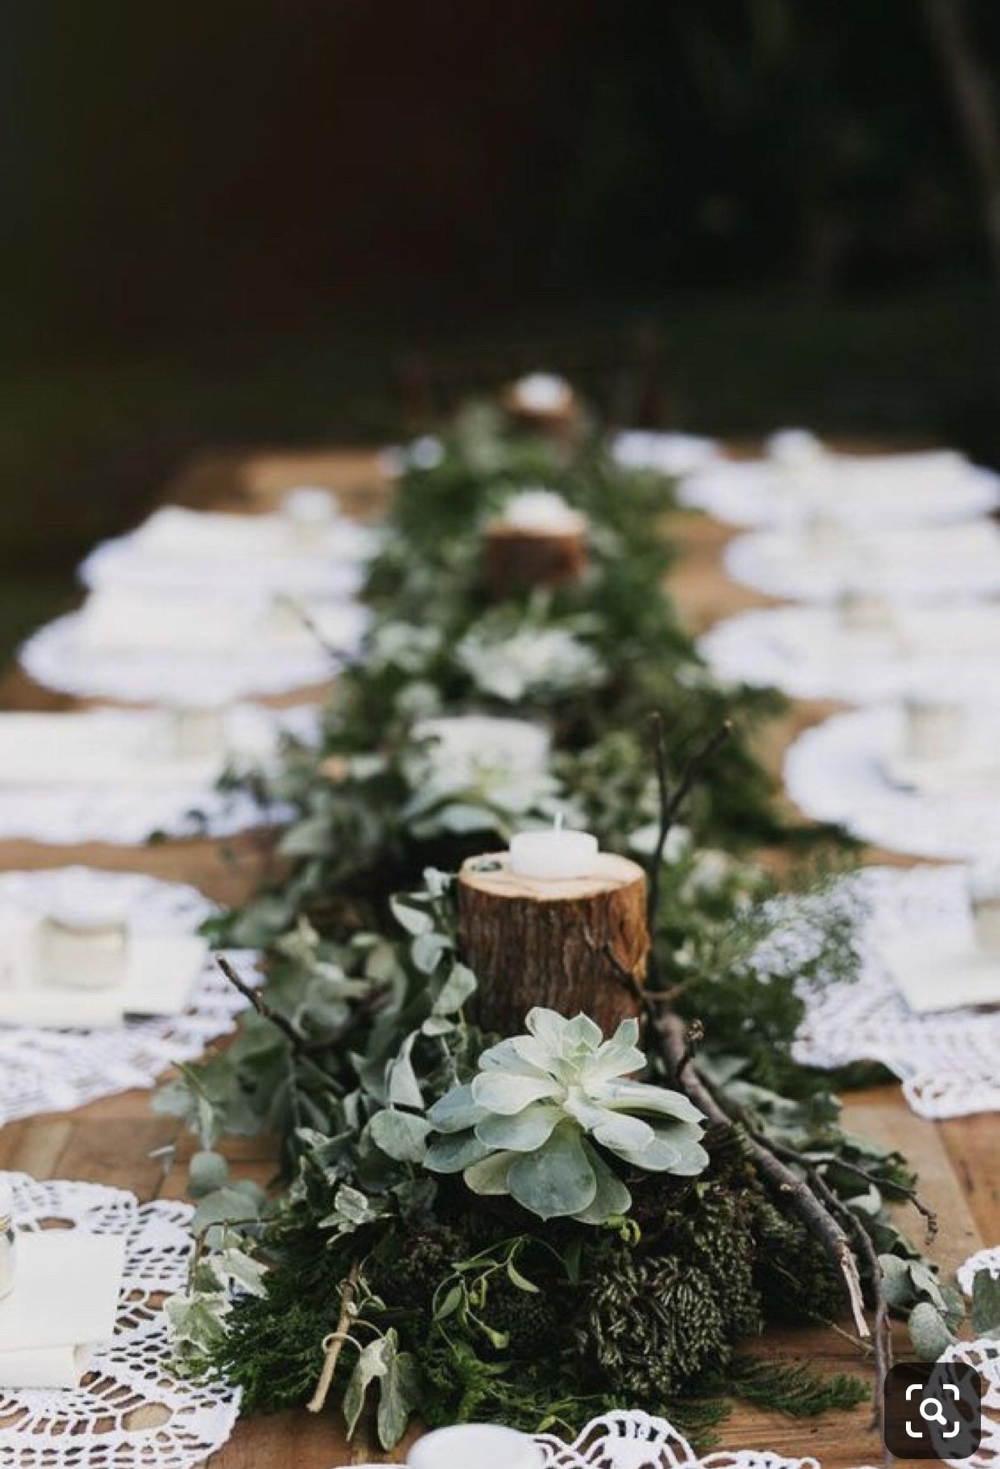 Custom Enchanted Woodland Table Decor Place Settings With Natural